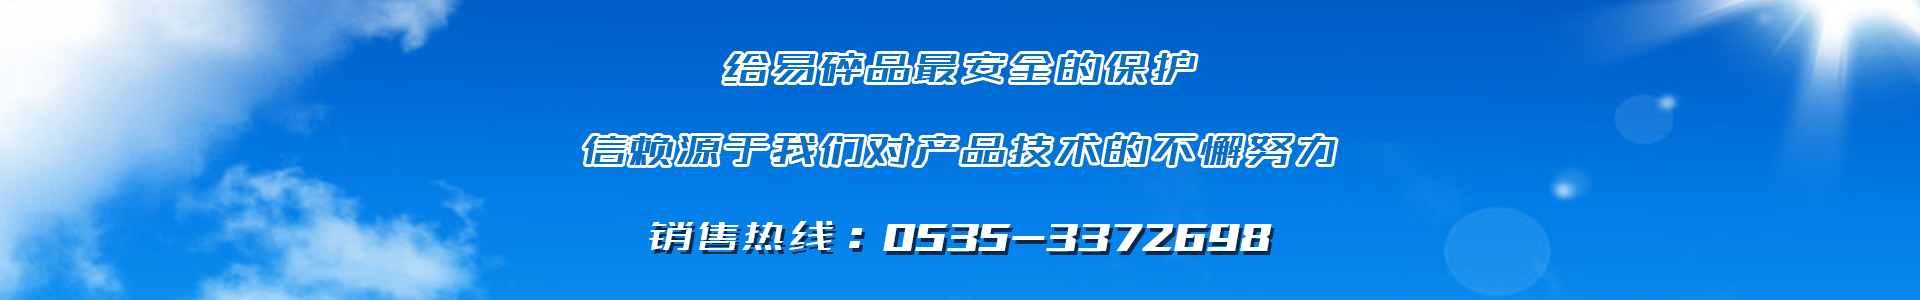 http://www.ythengxiu.cn/data/upload/201911/20191111103637_203.jpg